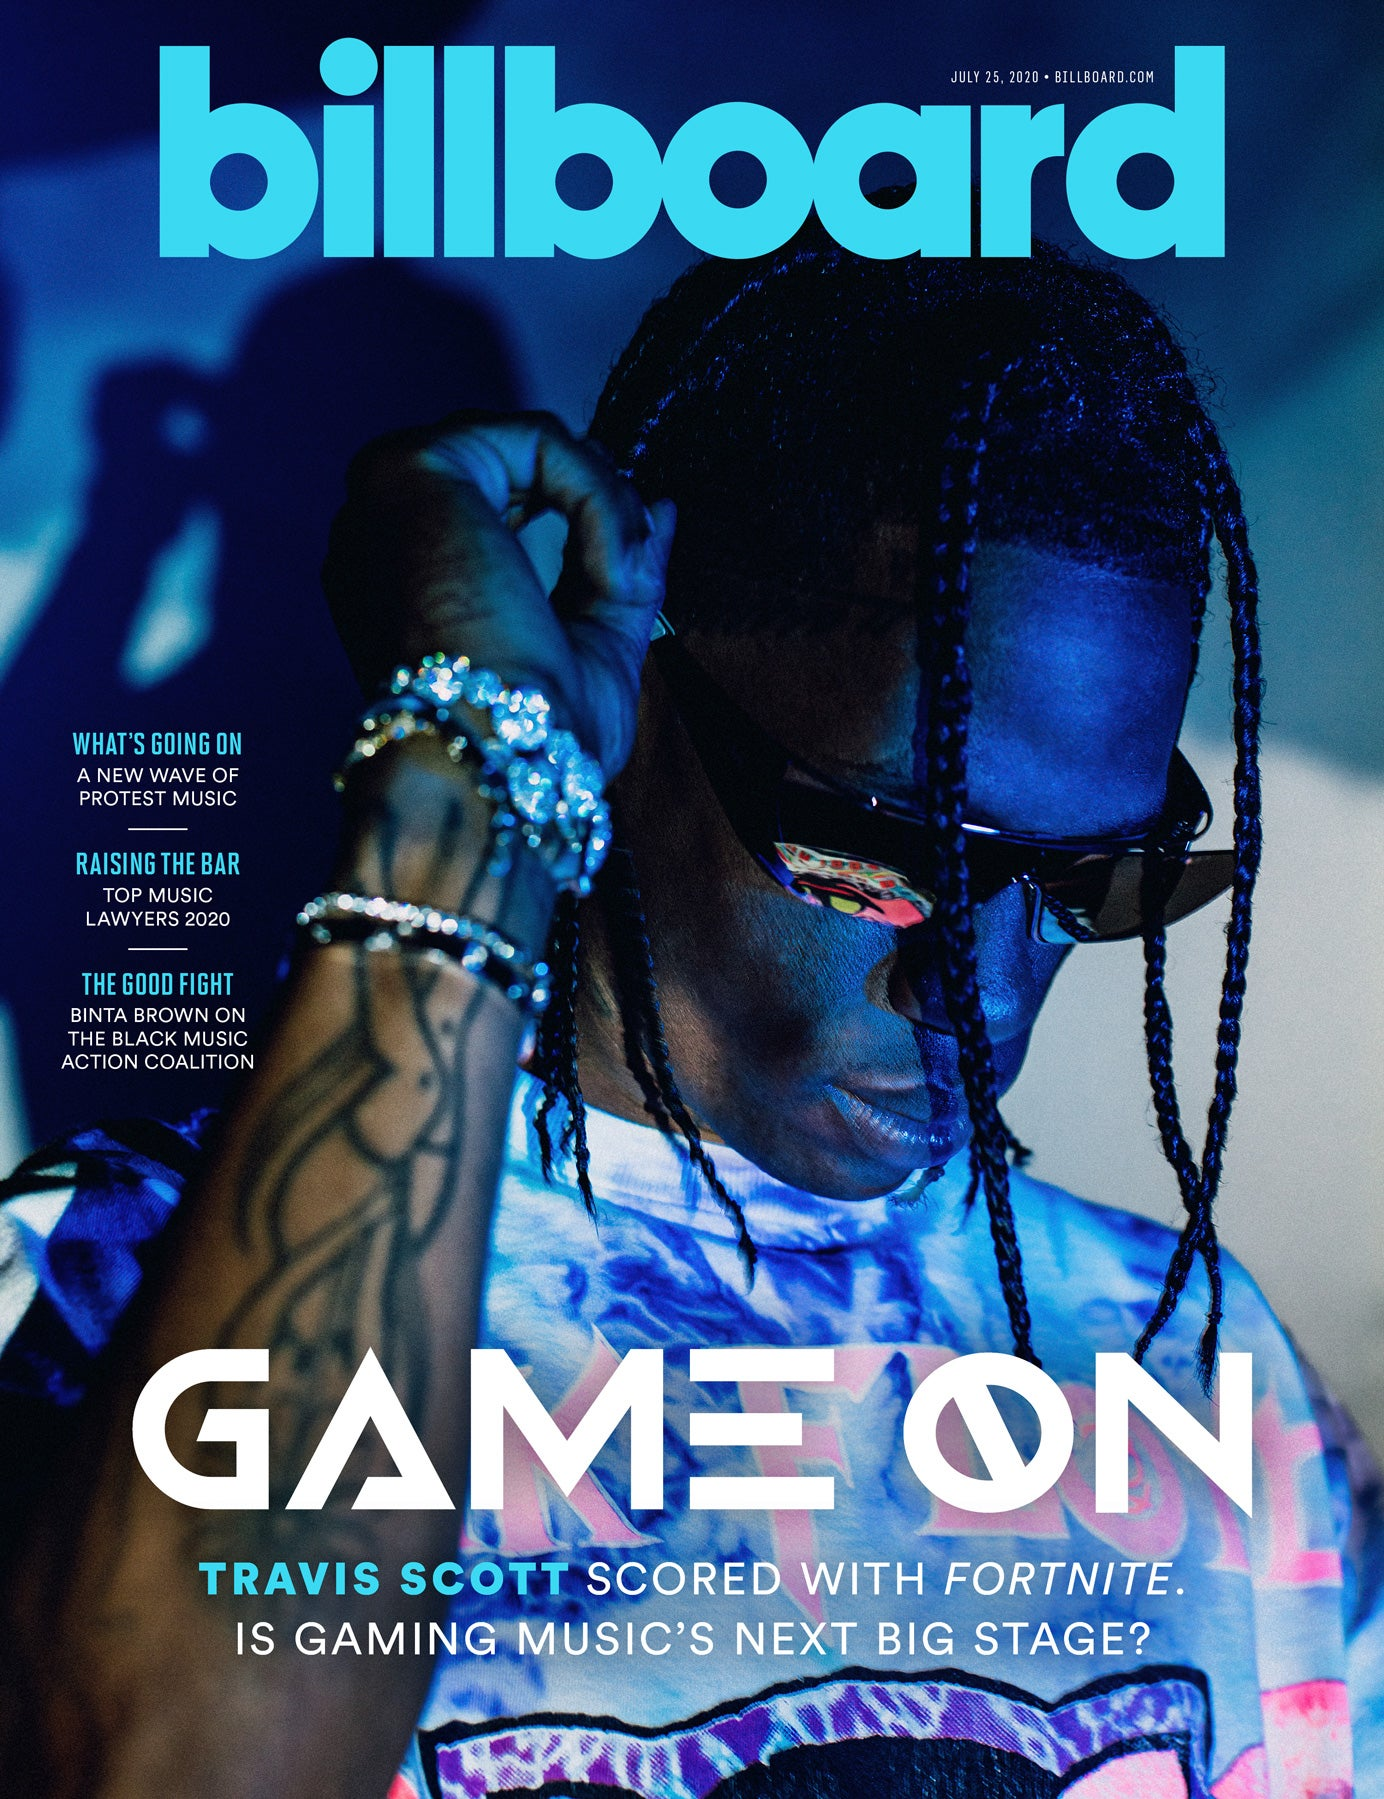 SPOTTED: Travis Scott on the Latest Billboard Cover